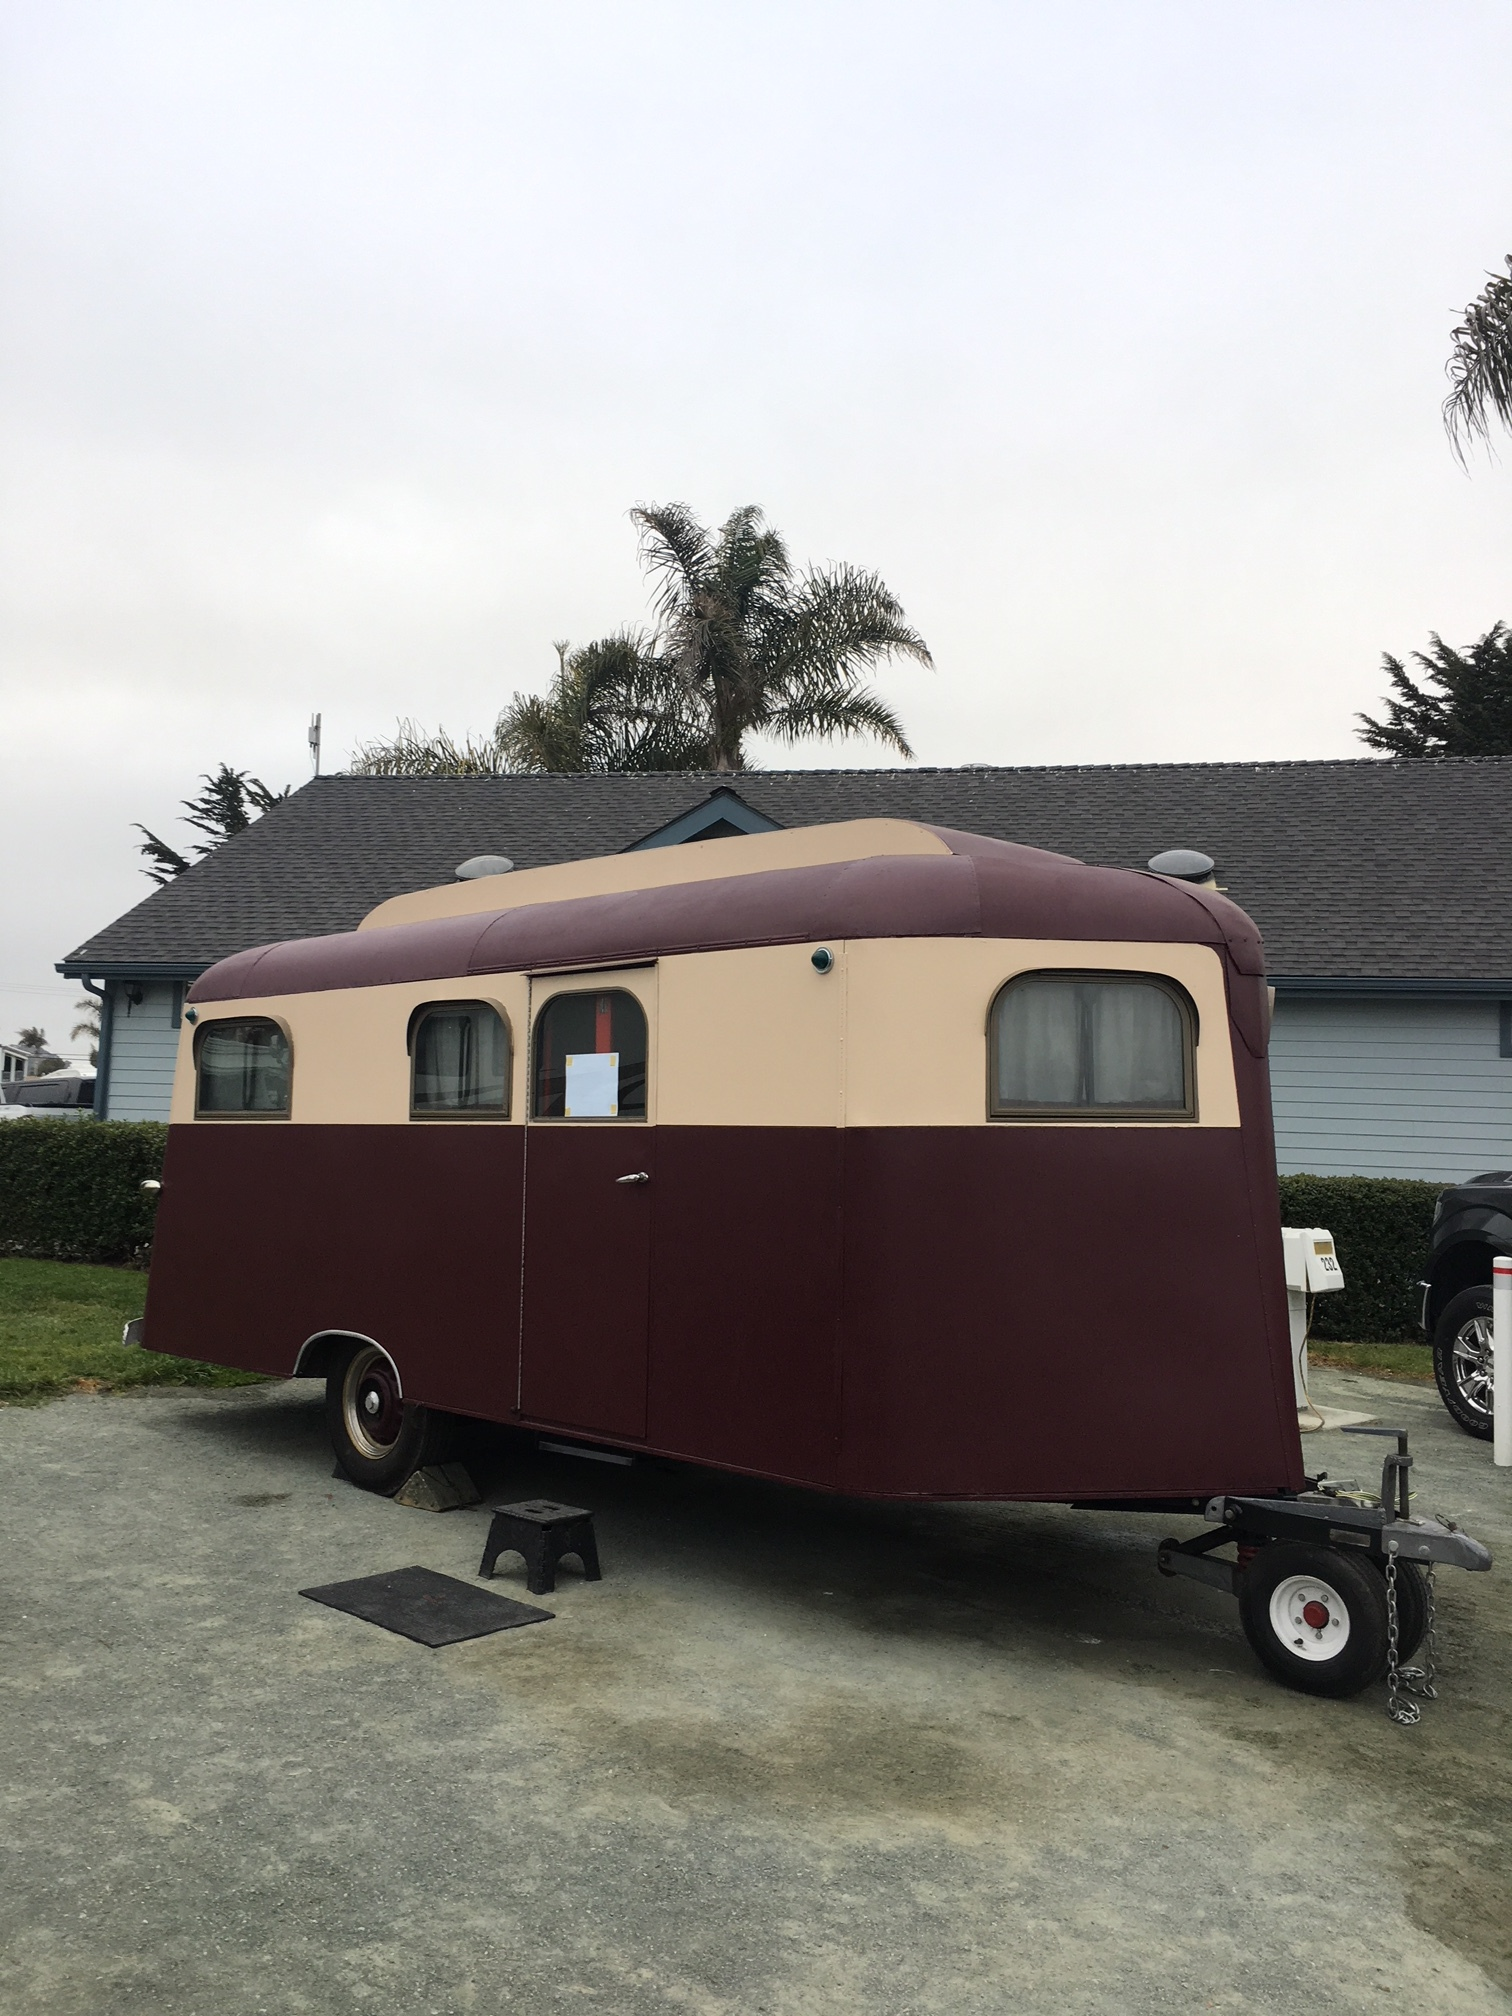 A 1937 Cozy Coach vintage trailer